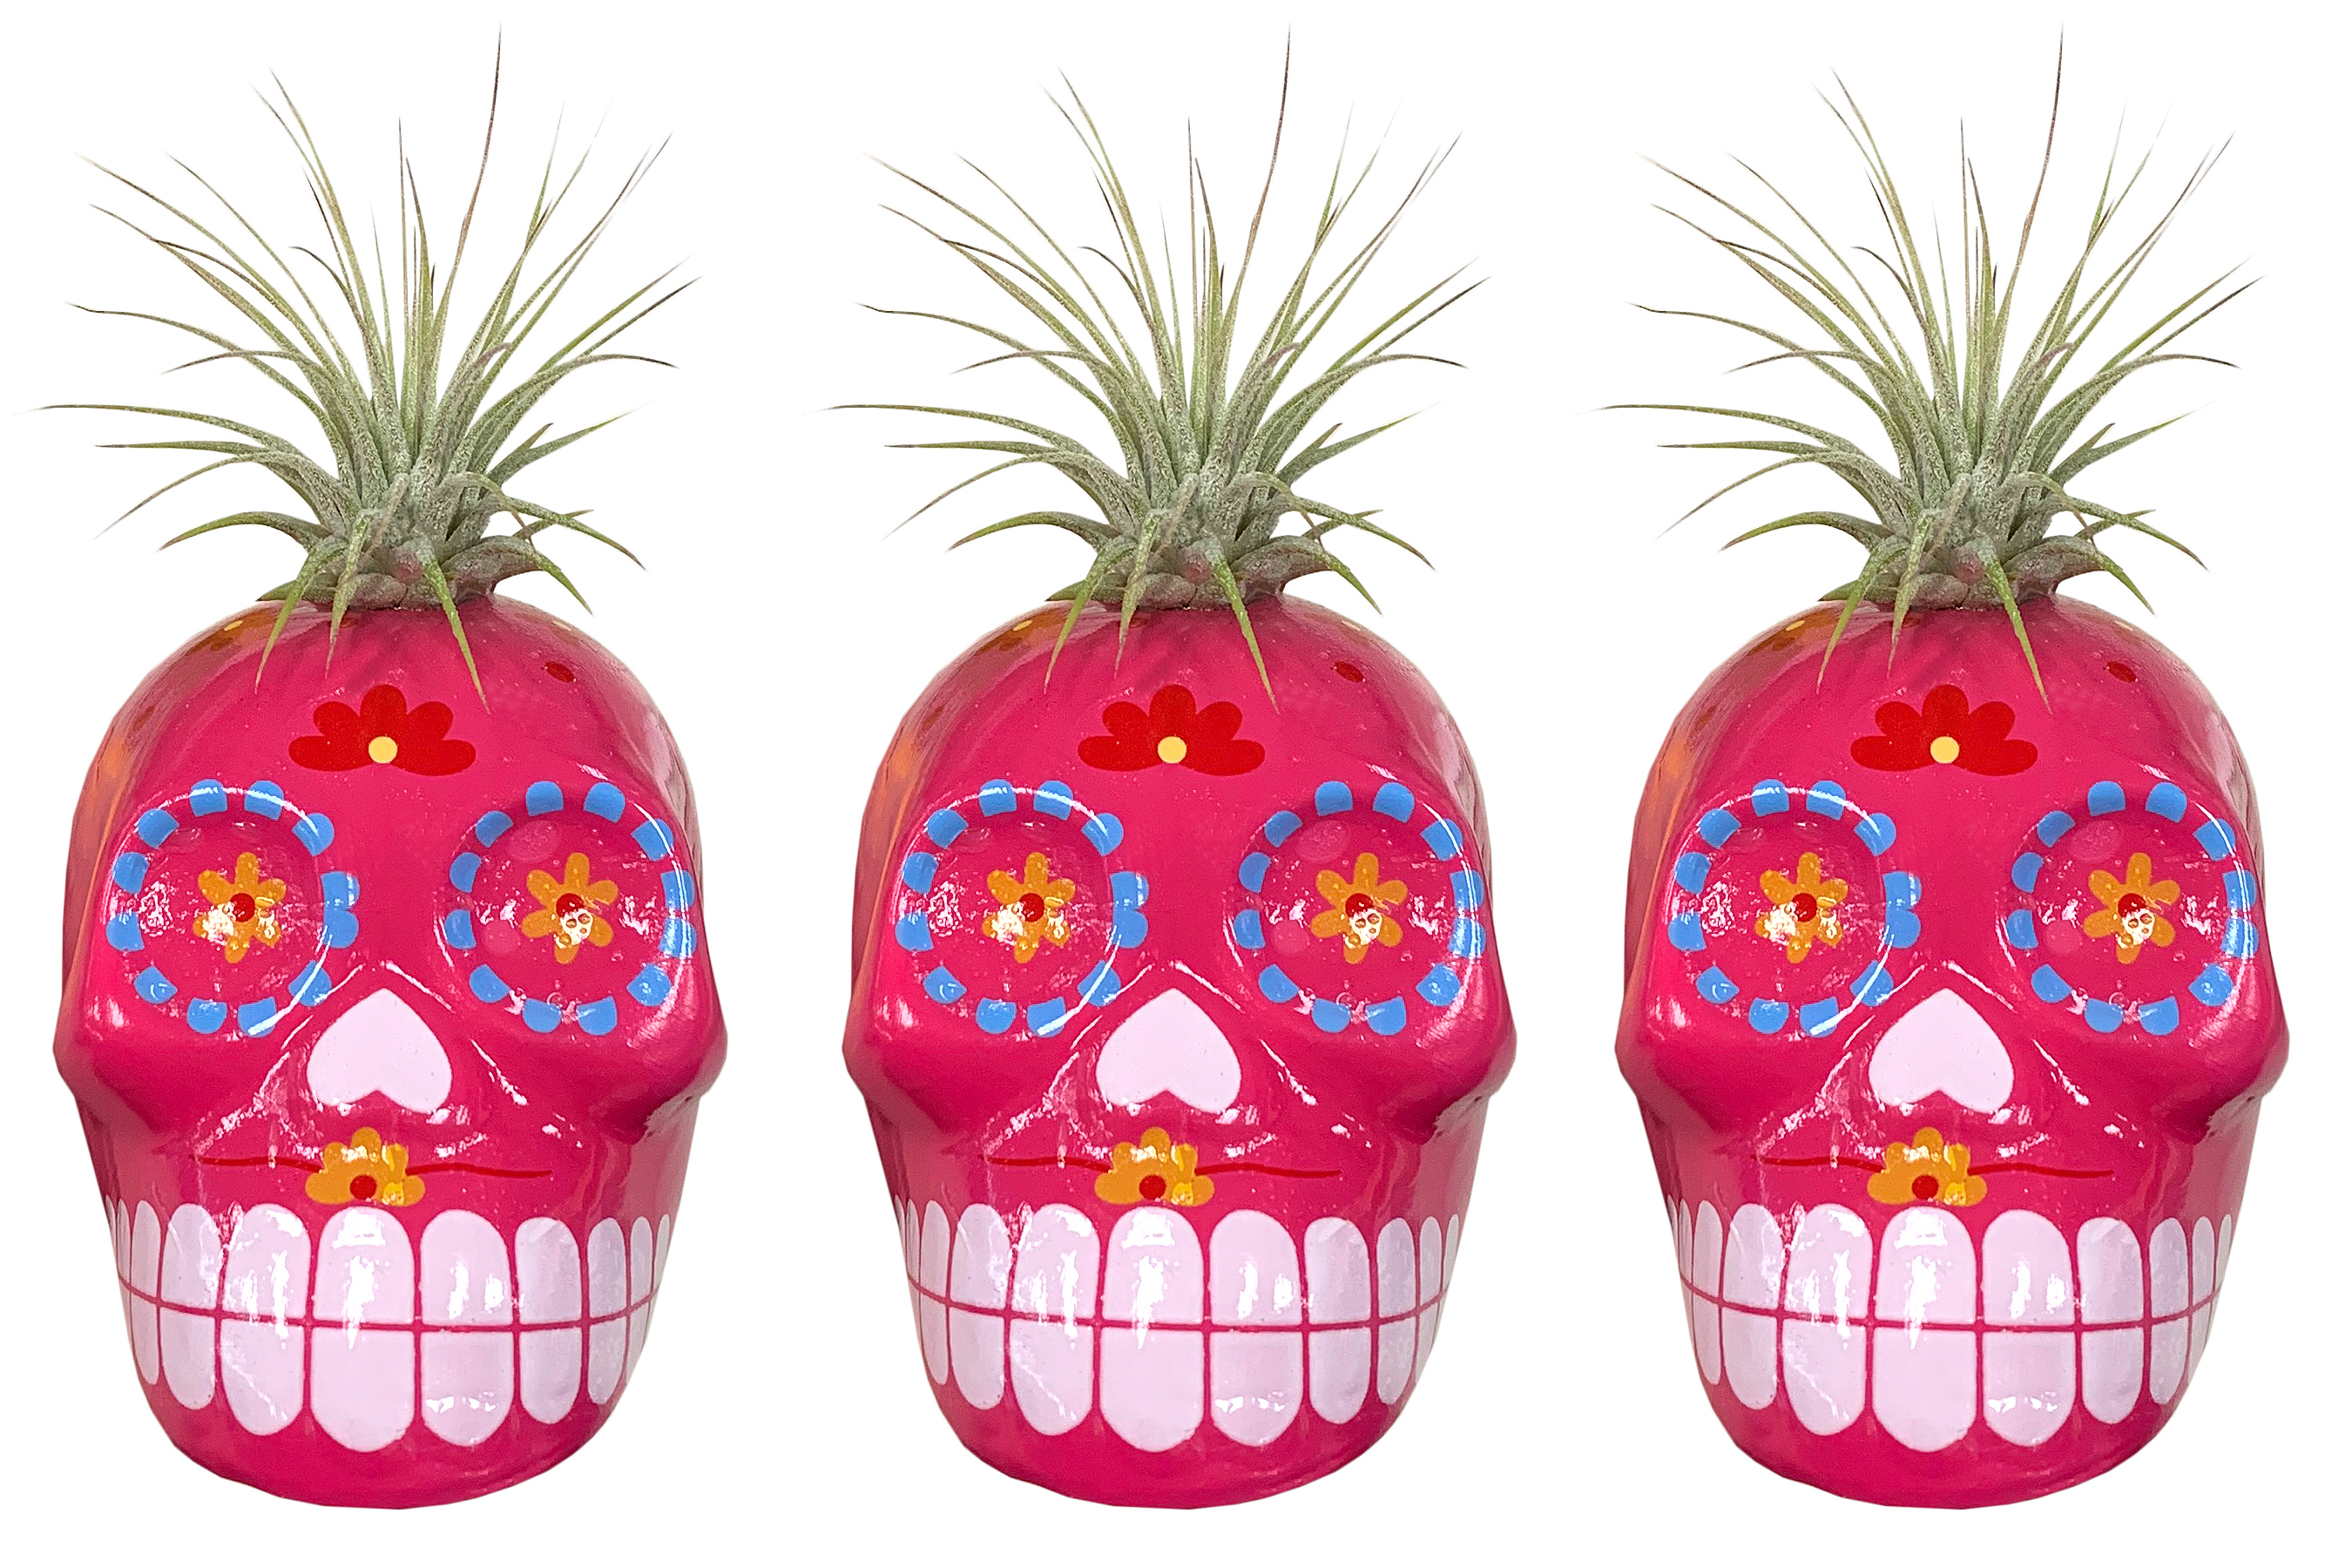 Trader Joe's Is Selling $4 Sugar Skull Succulent Planters to Celebrate Day of the Dead